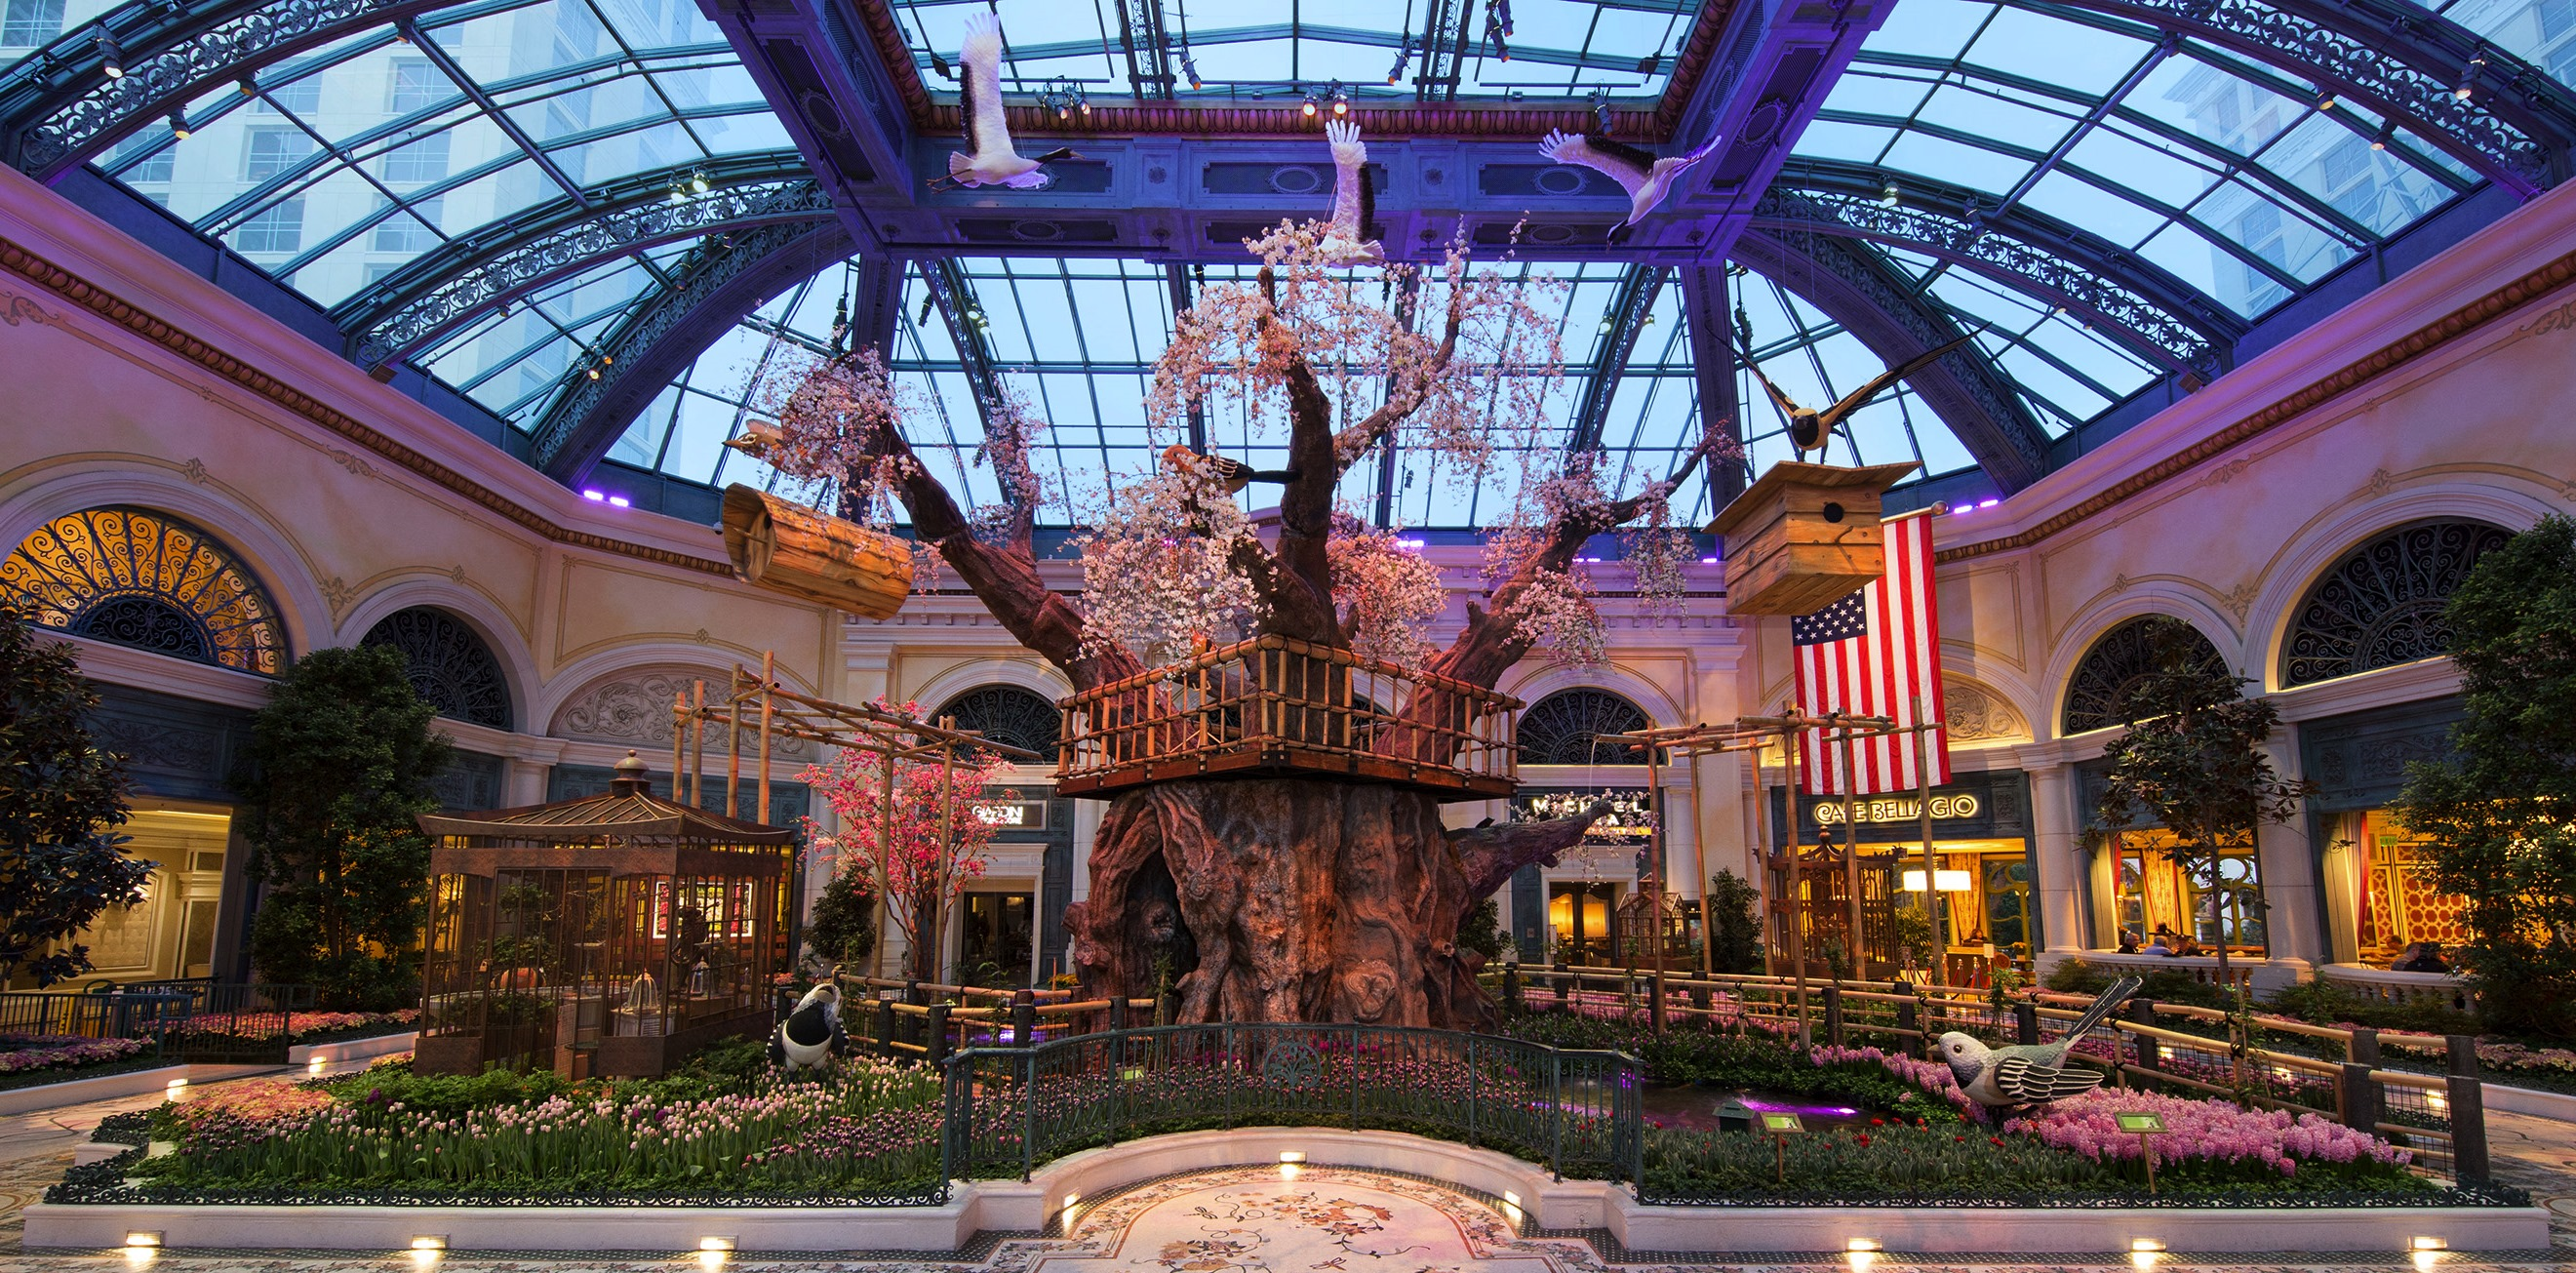 Bet you wish you had a tree house like the one at the Bellagio Conservatory.